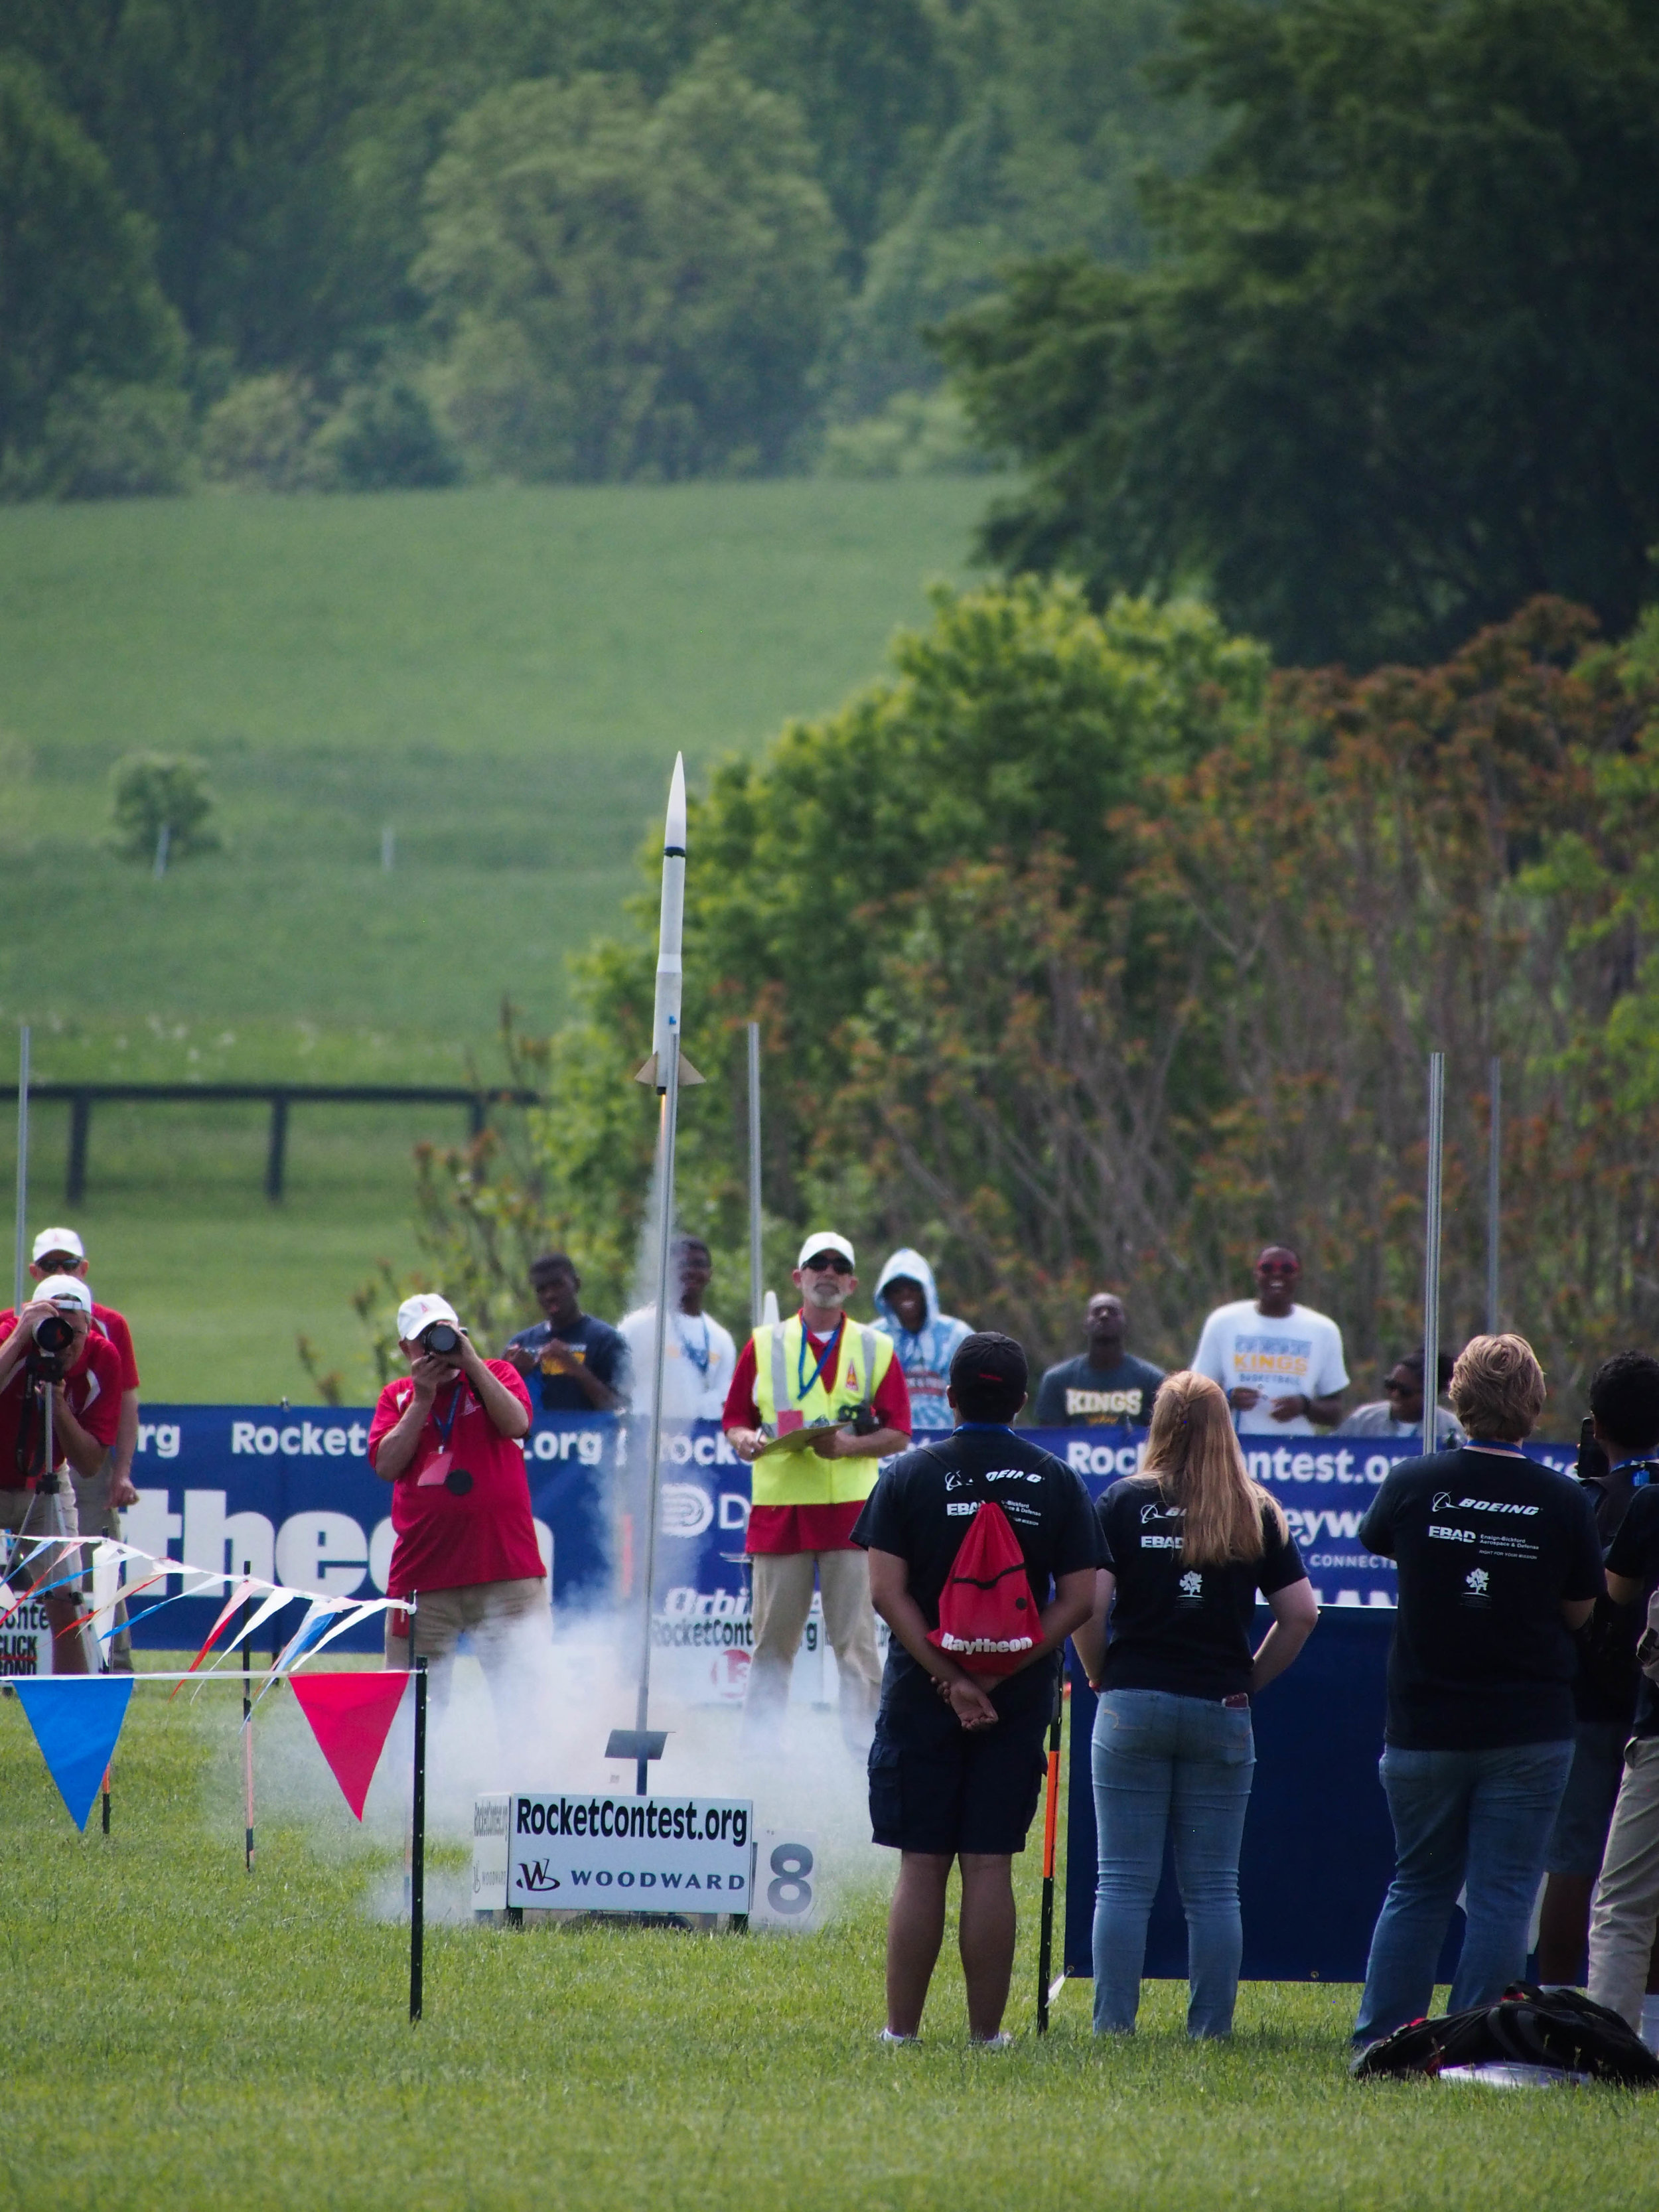 Team one launches at Finals